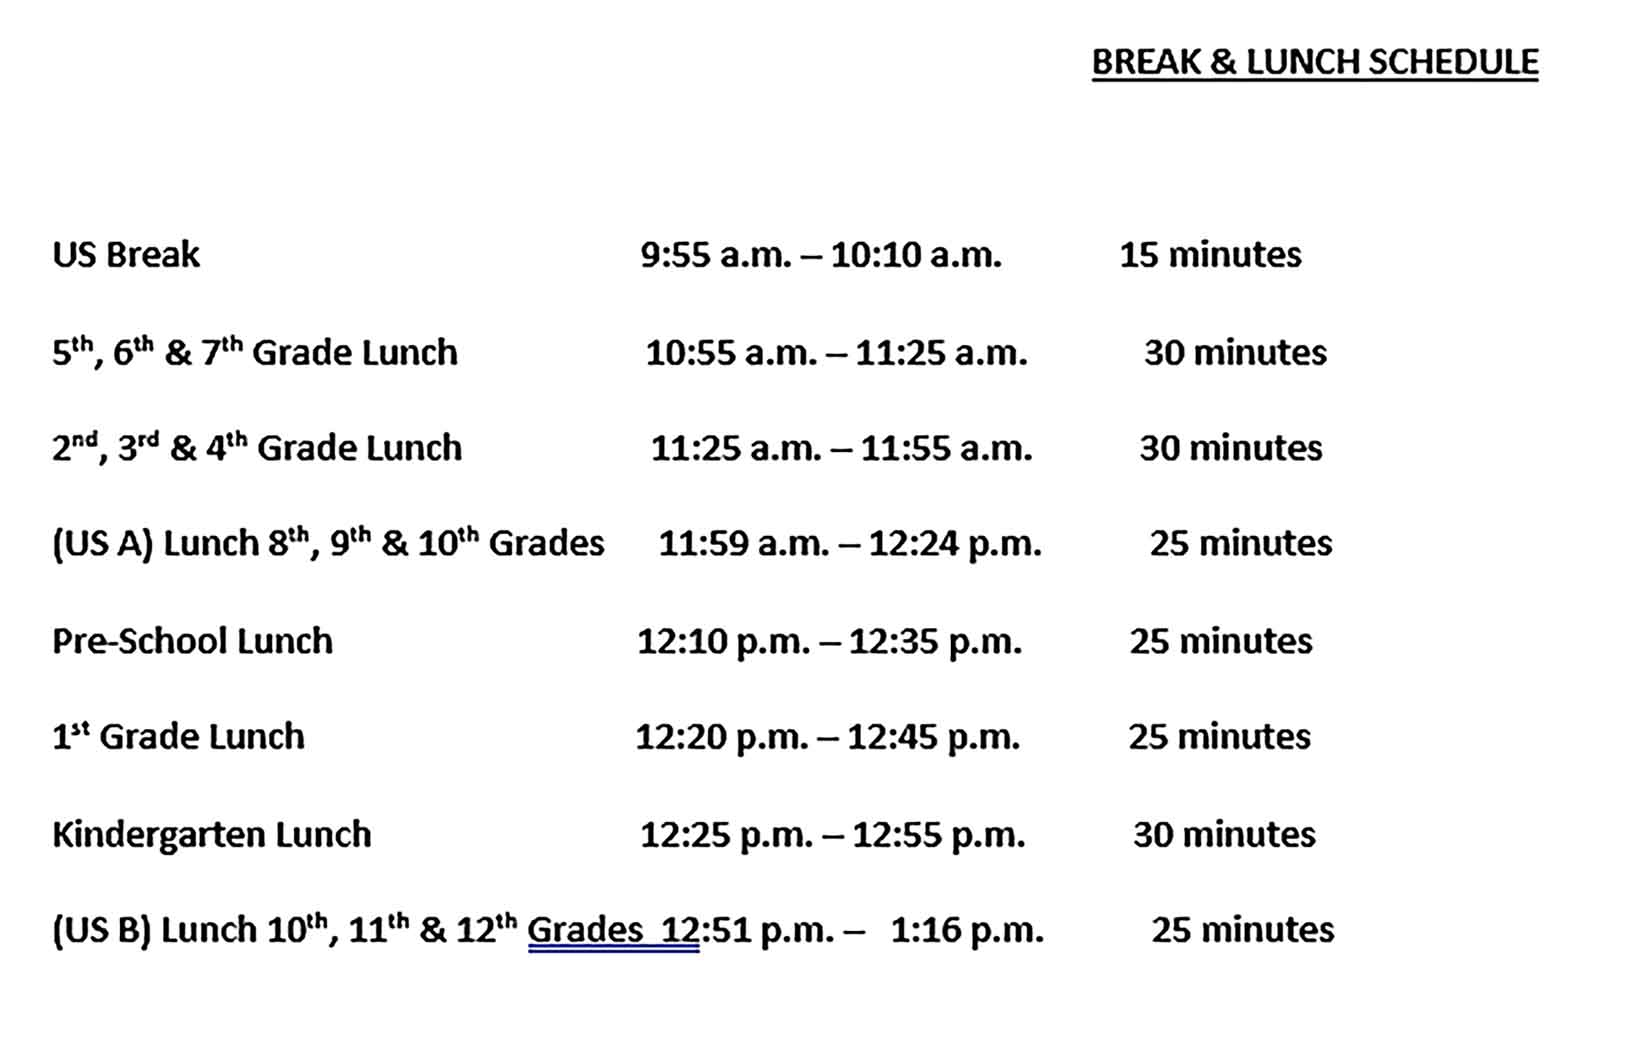 Template Lunch and Break Schedule Sample